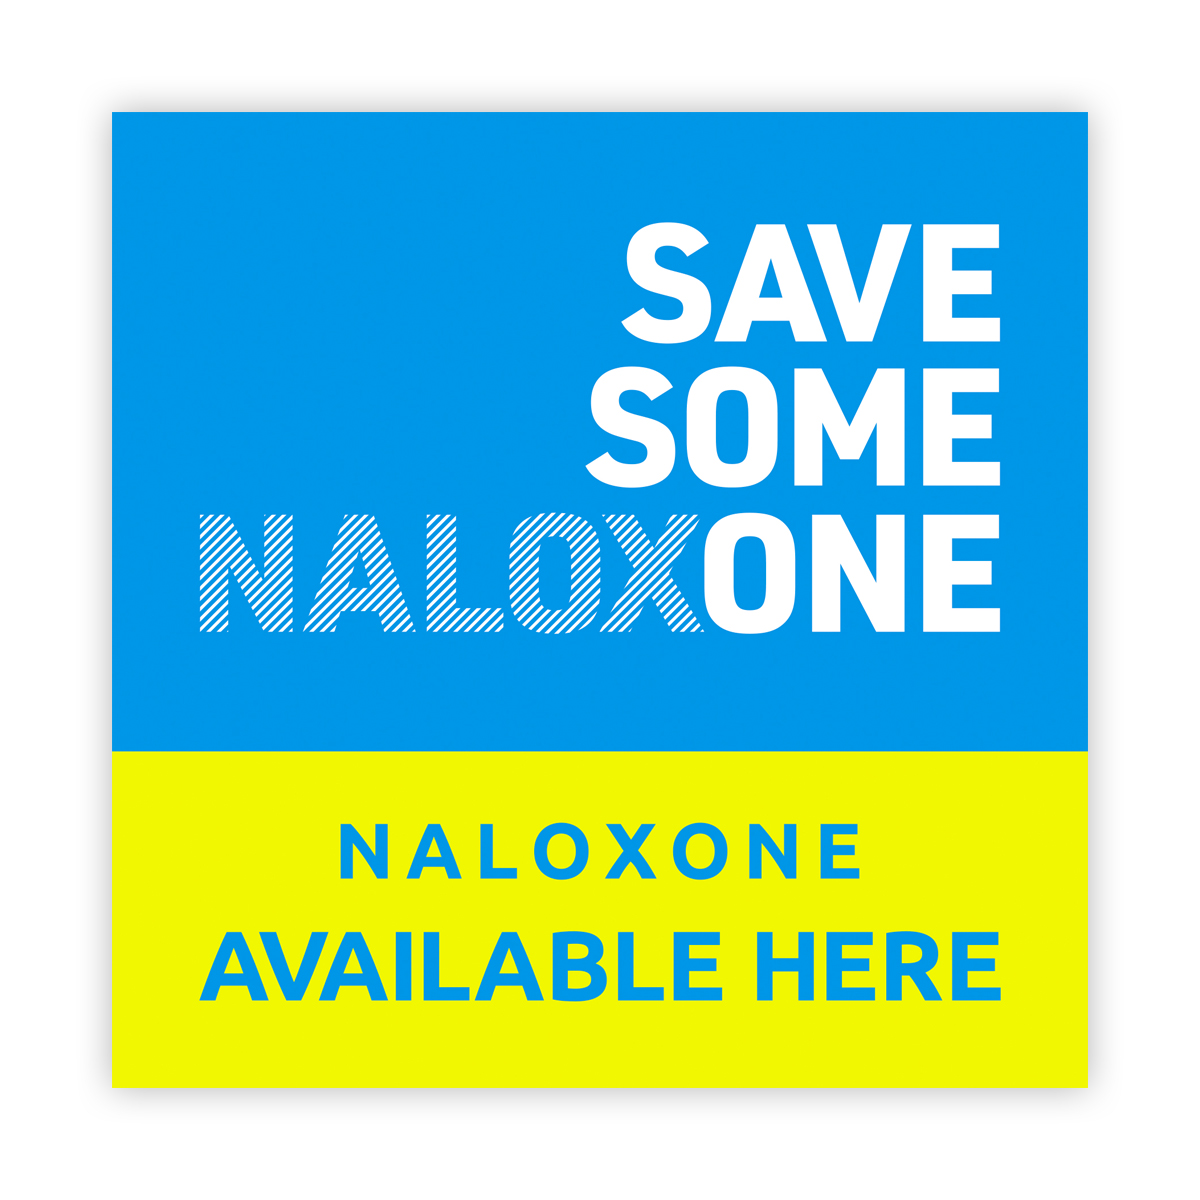 Save someone naloxone (wall sticker)